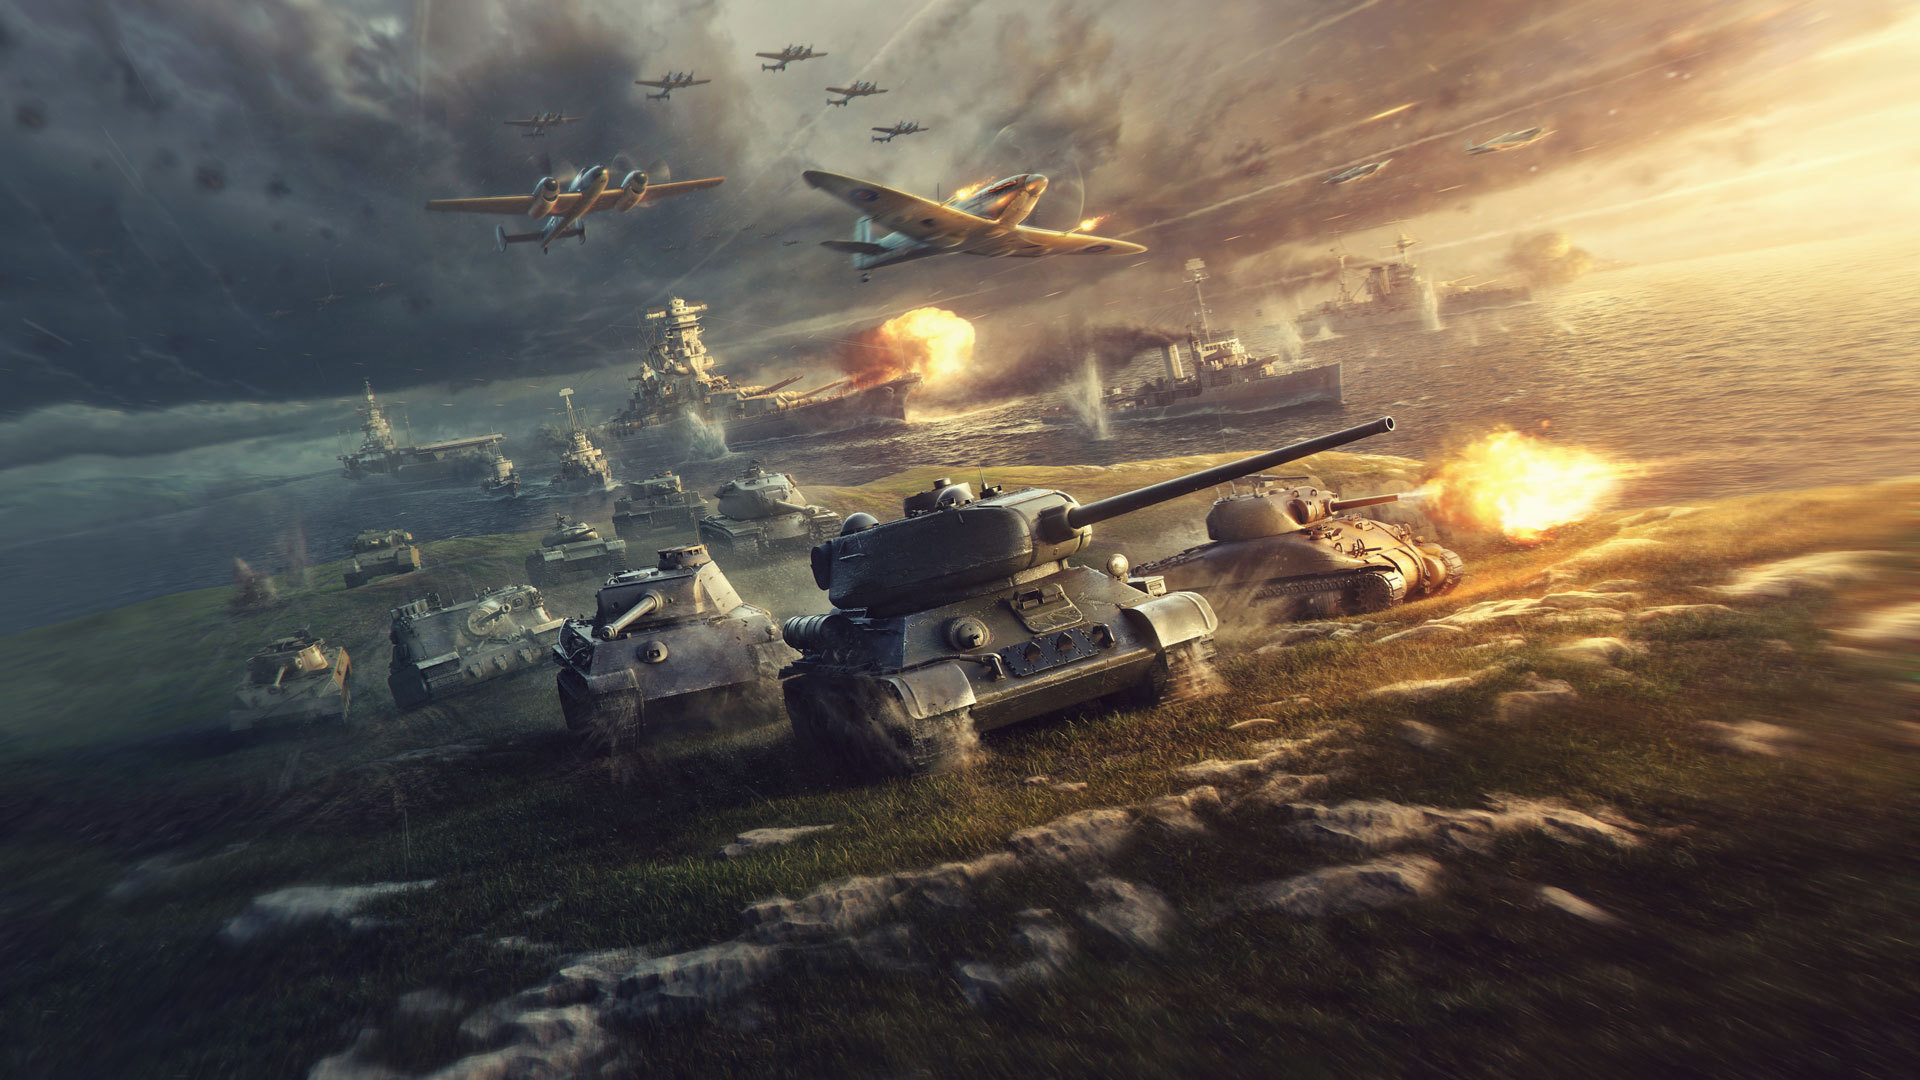 World of tanks world of warplanes world of warships wargaming net